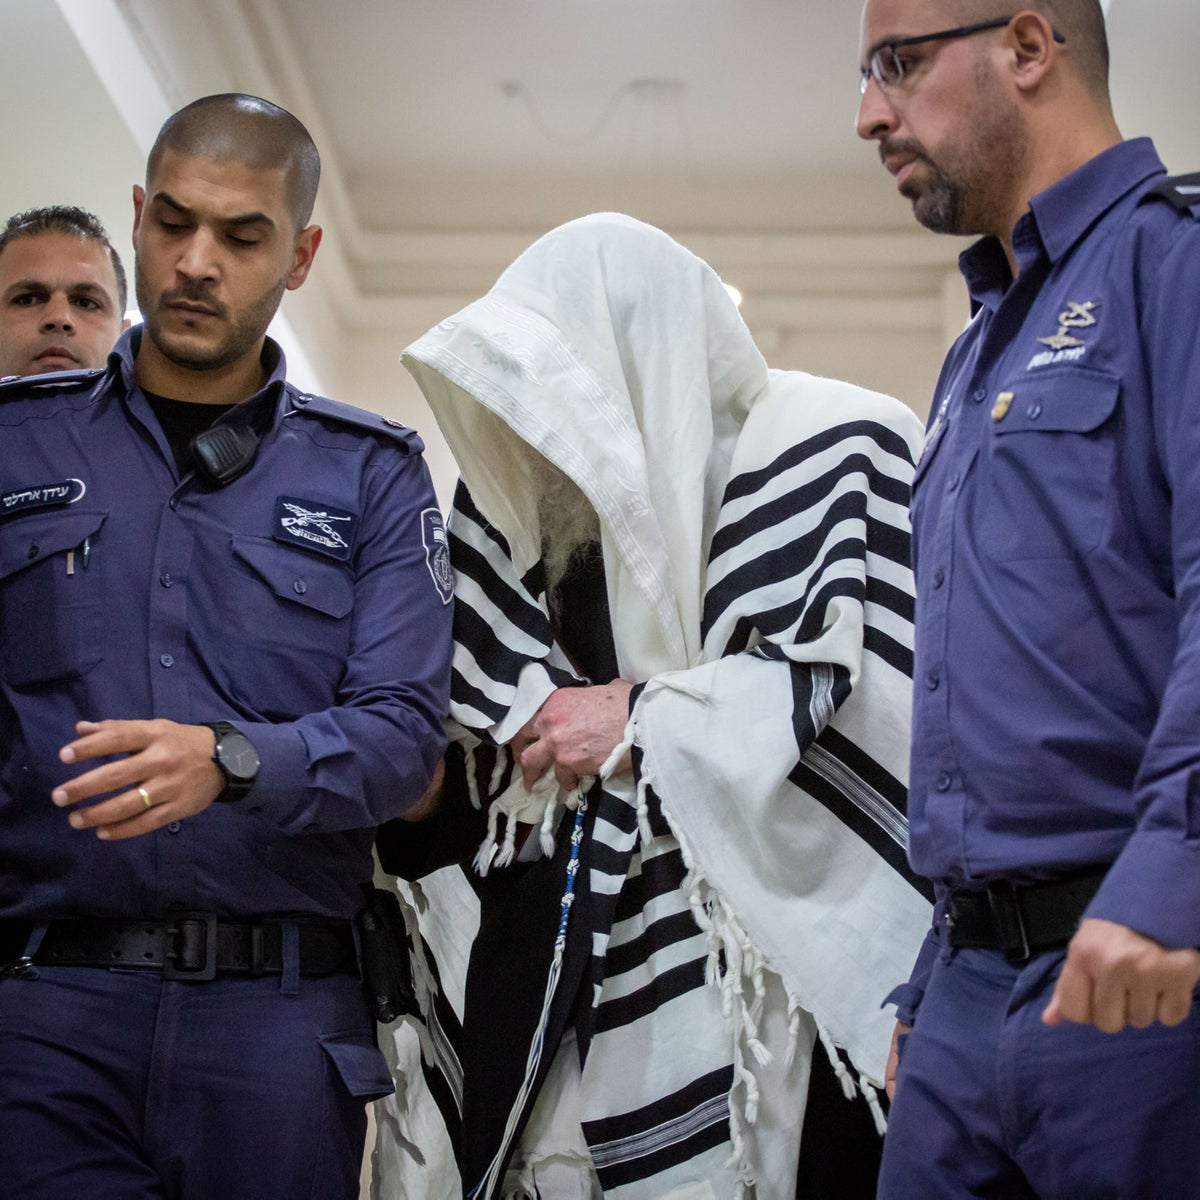 Rabbi Eliezer Berland, center, is being led into court in January 2020.